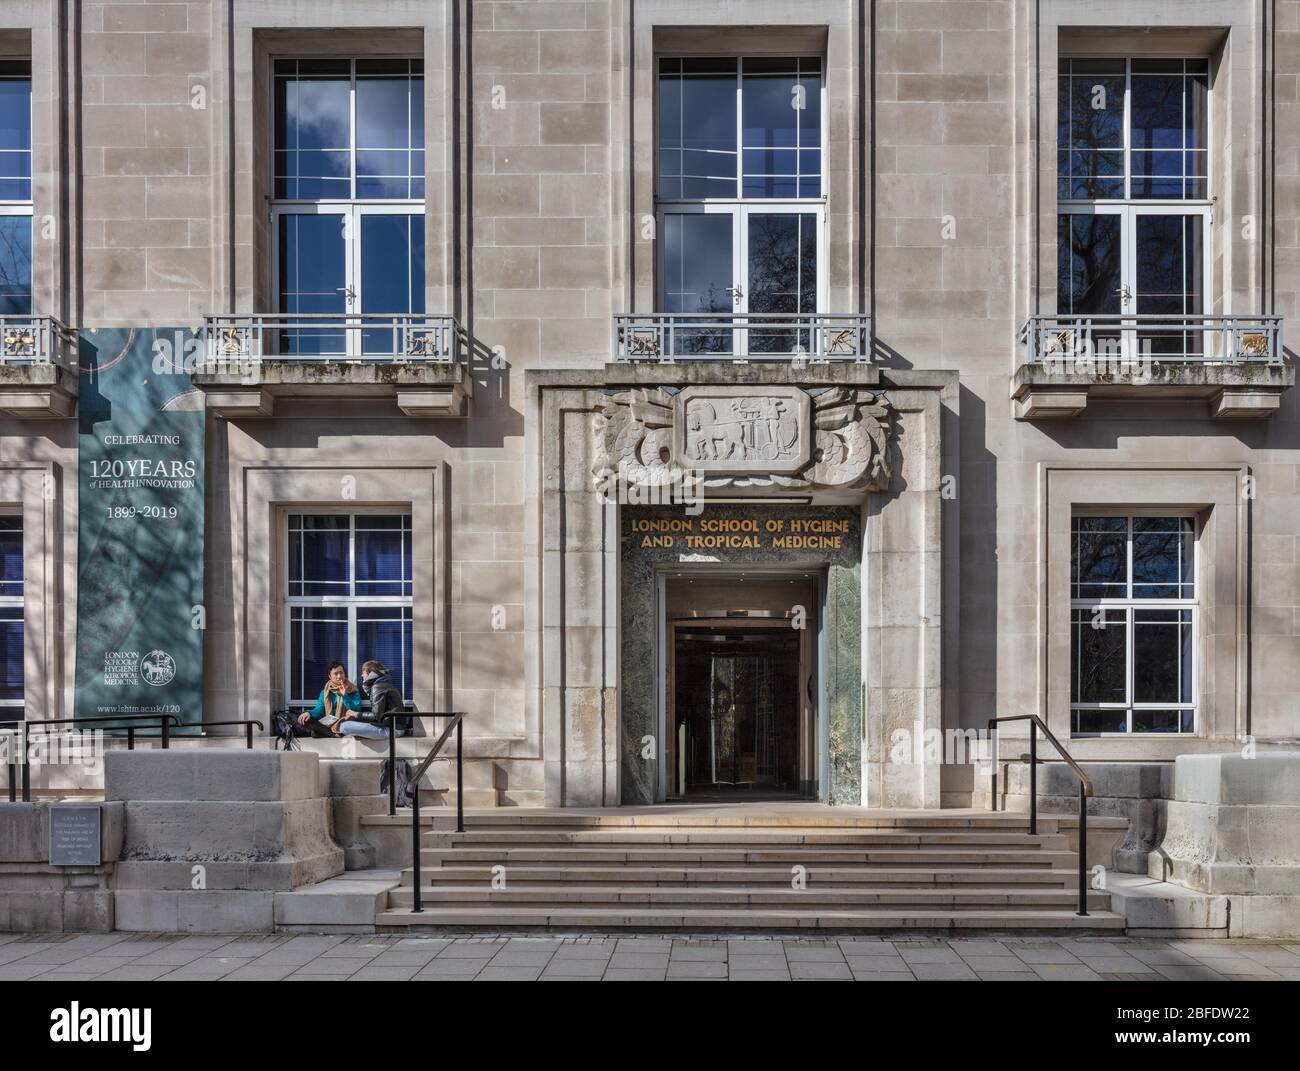 Entrance to the London School of Hygiene and Tropical Medicine in Keppel Street, London. Stock Photo